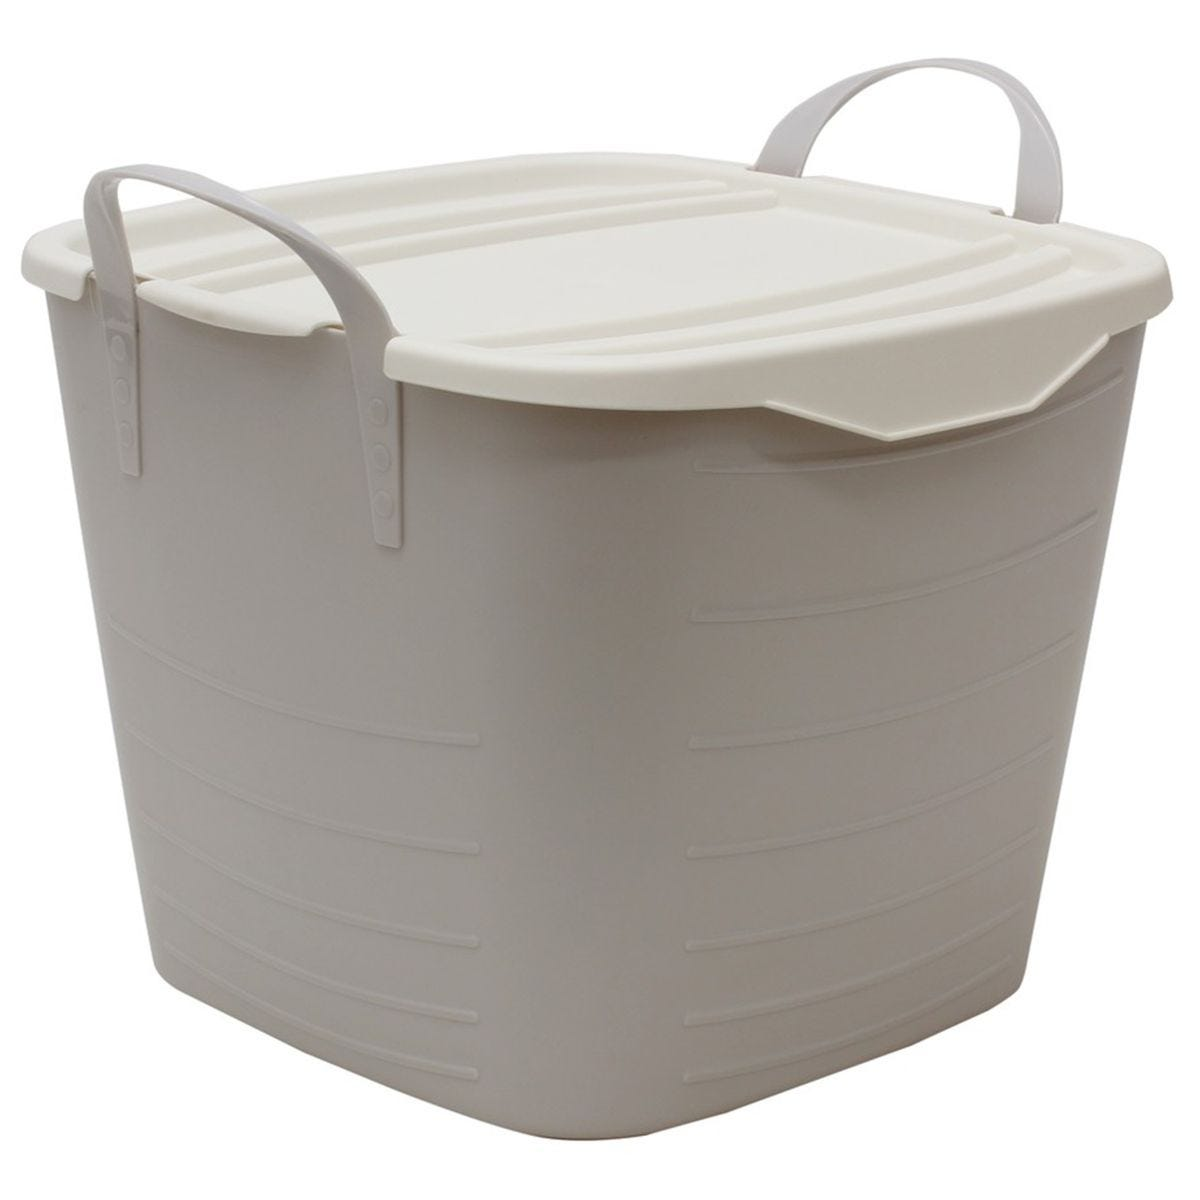 JVL Funktional Medium 25 Litre Plastic Storage Container with Lid Grey 41x37xH35cm